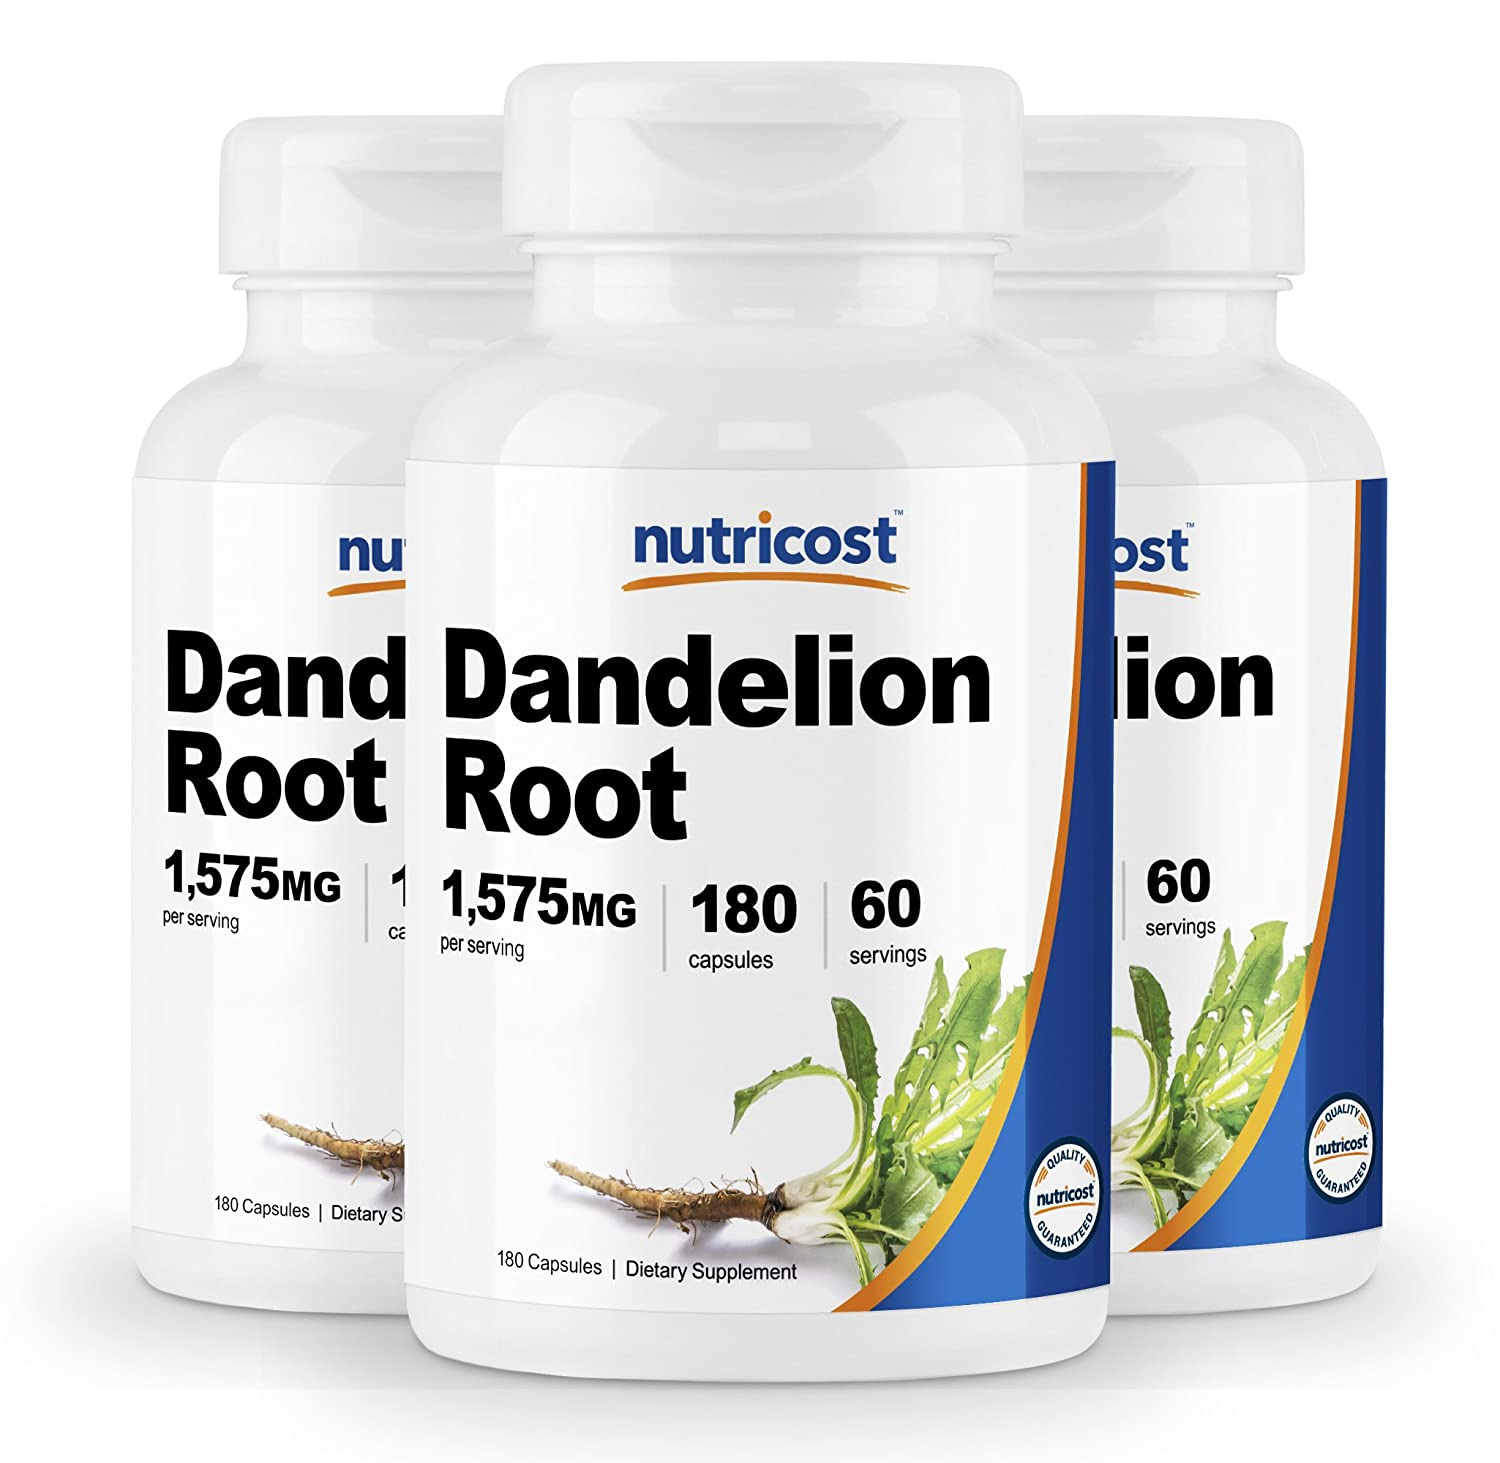 Nutricost Dandelion Root 525mg, 180 Capsules 3 Bottles – 1575mg Serving, Non-GMO, Gluten Free